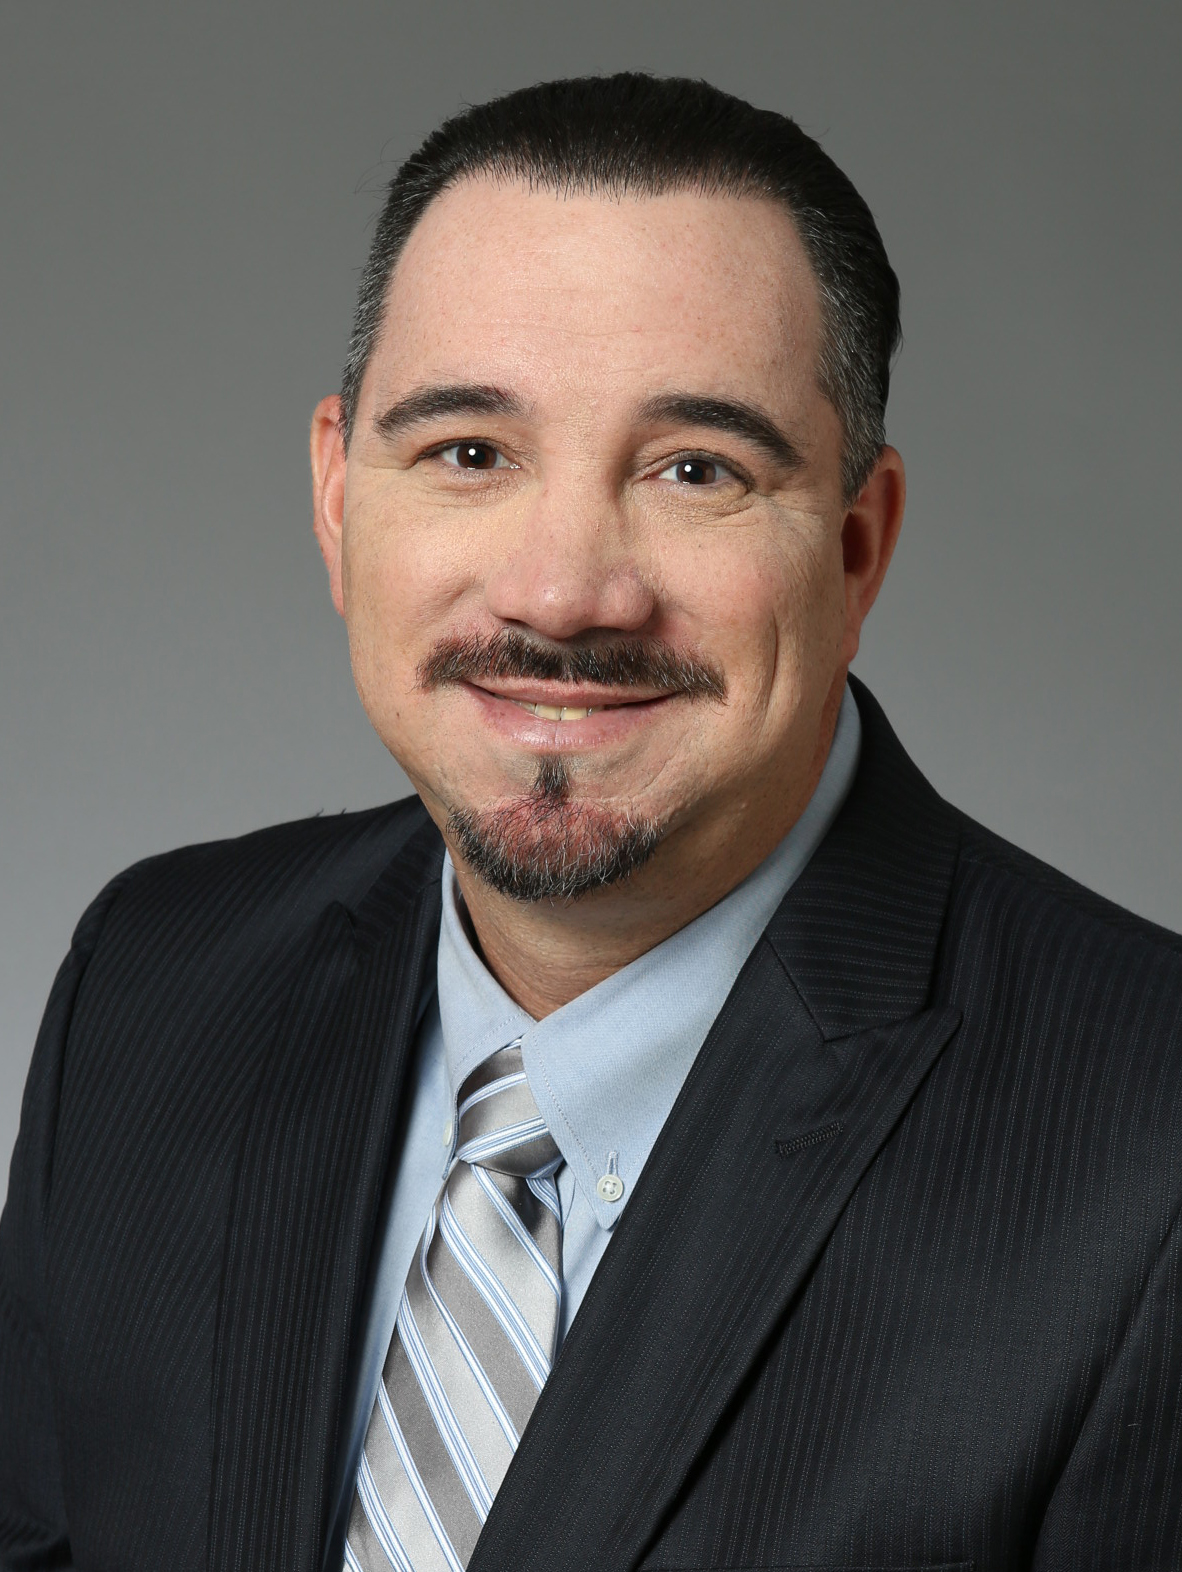 Greg Prine, Weatherby Healthcare vice president